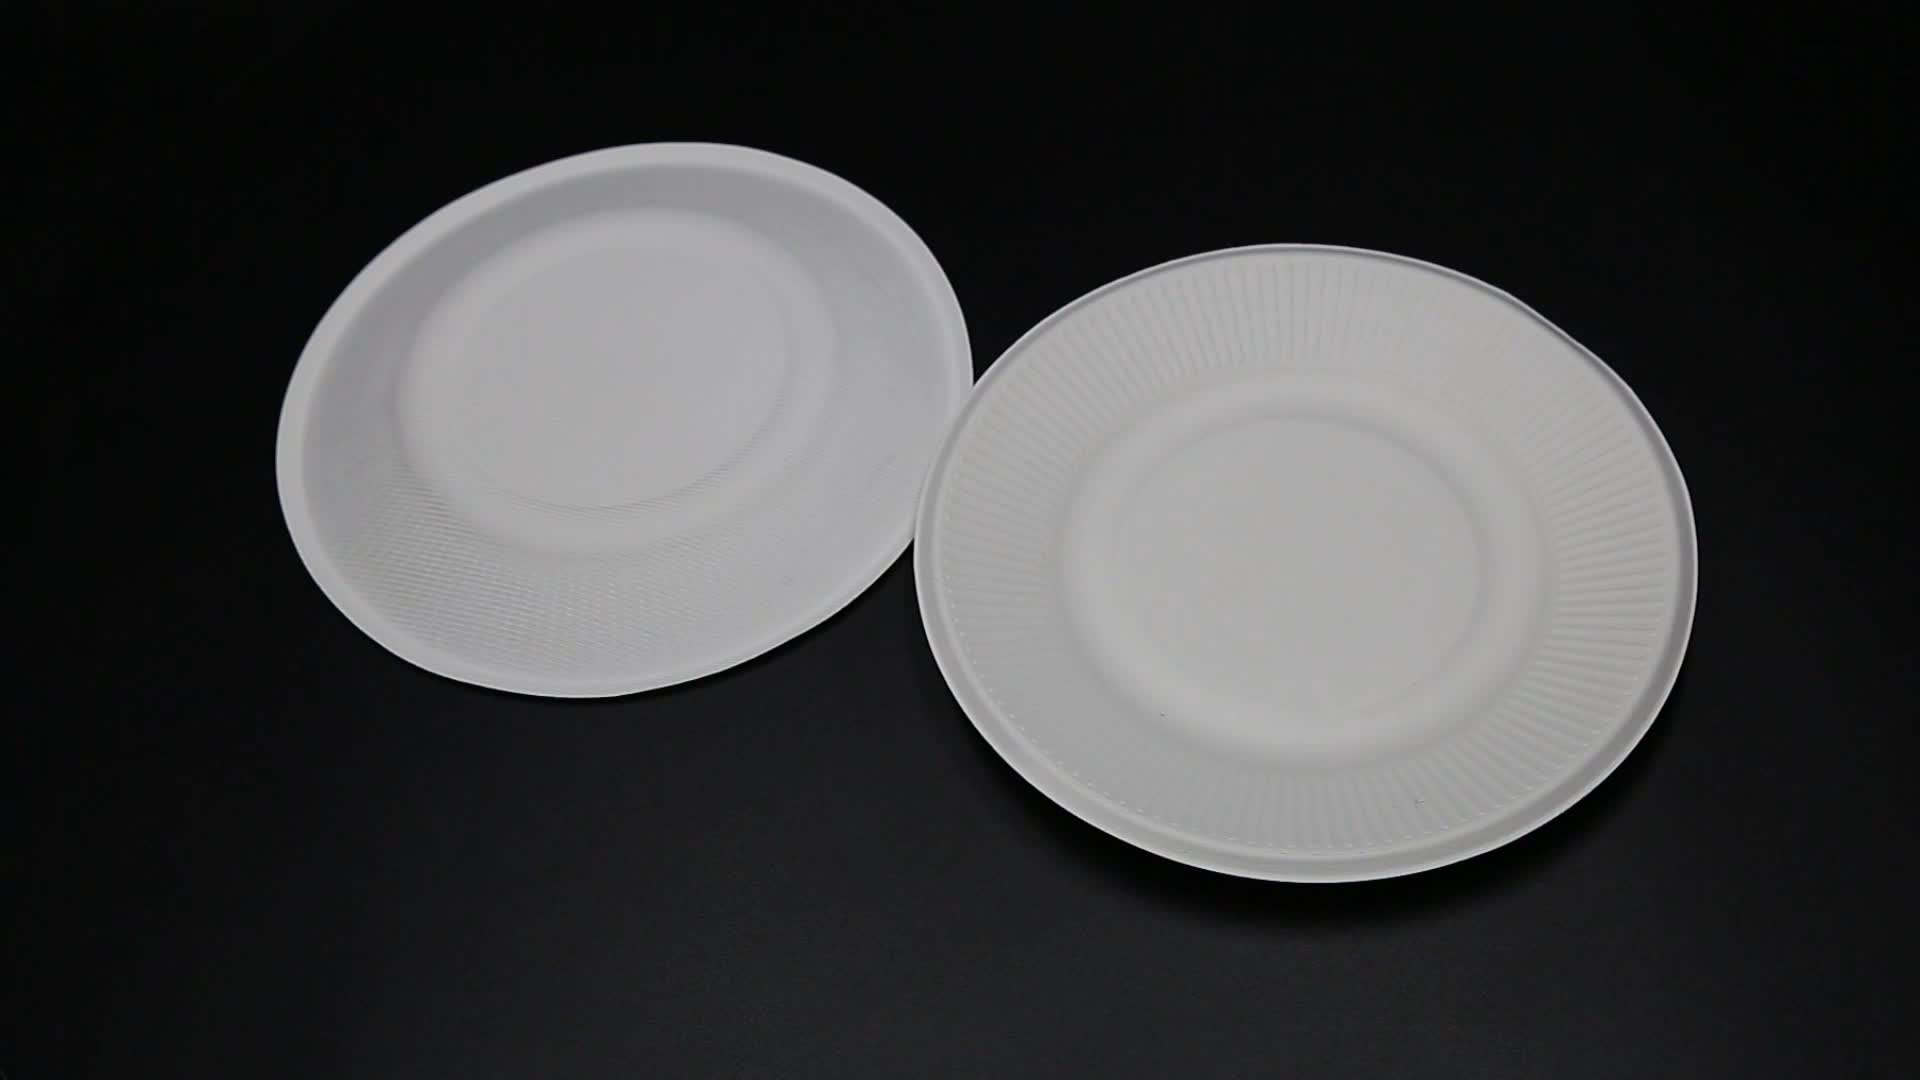 Disposable take away food container party wedding picnic disposable plates